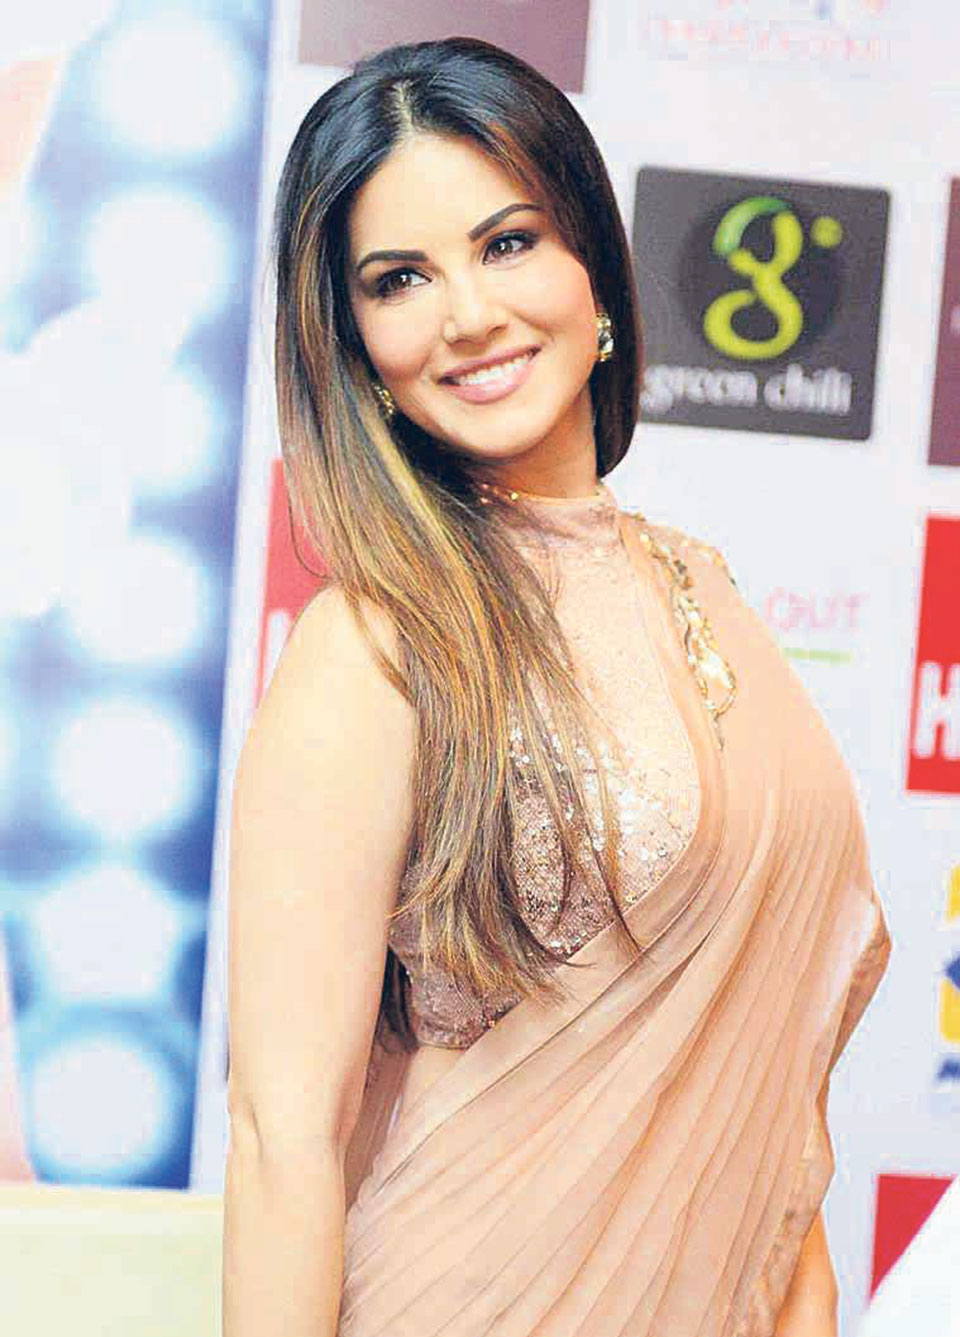 Thousands greet Sunny Leone in Kochi